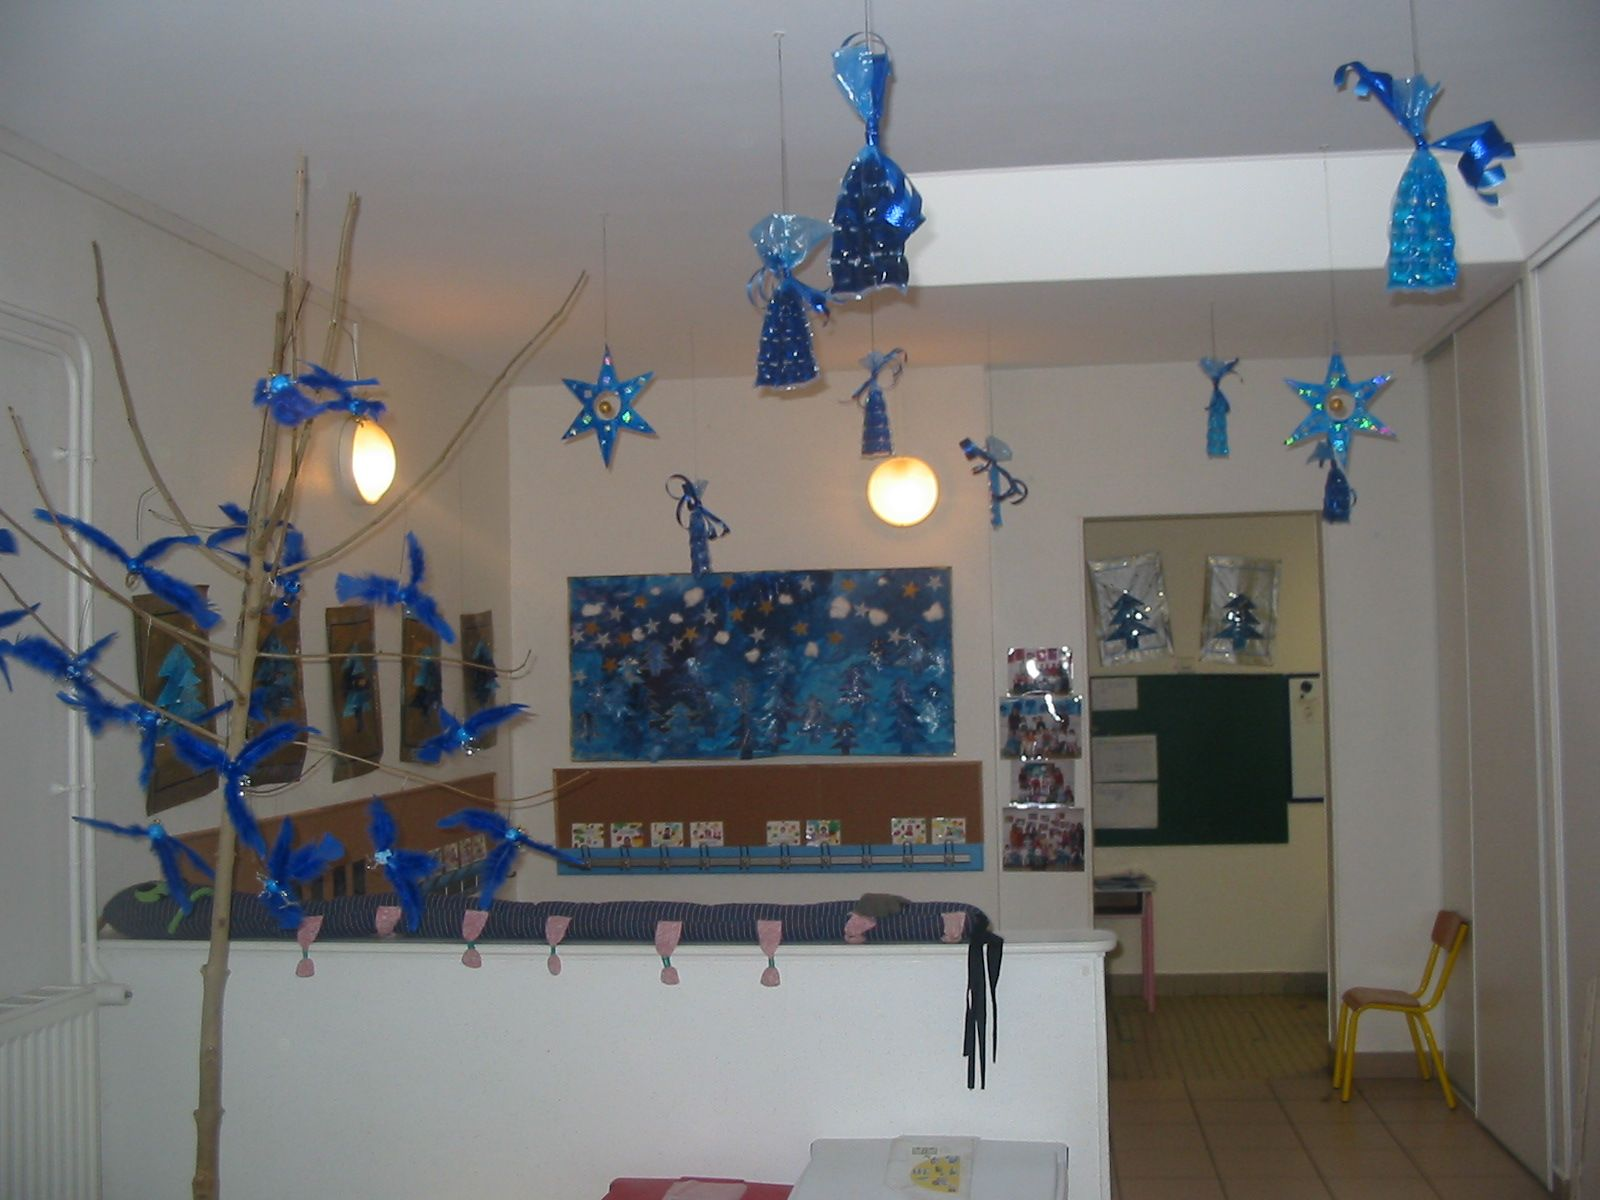 D coration d 39 une cole maternelle pour no l sur le th me for Decoration porte noel ecole